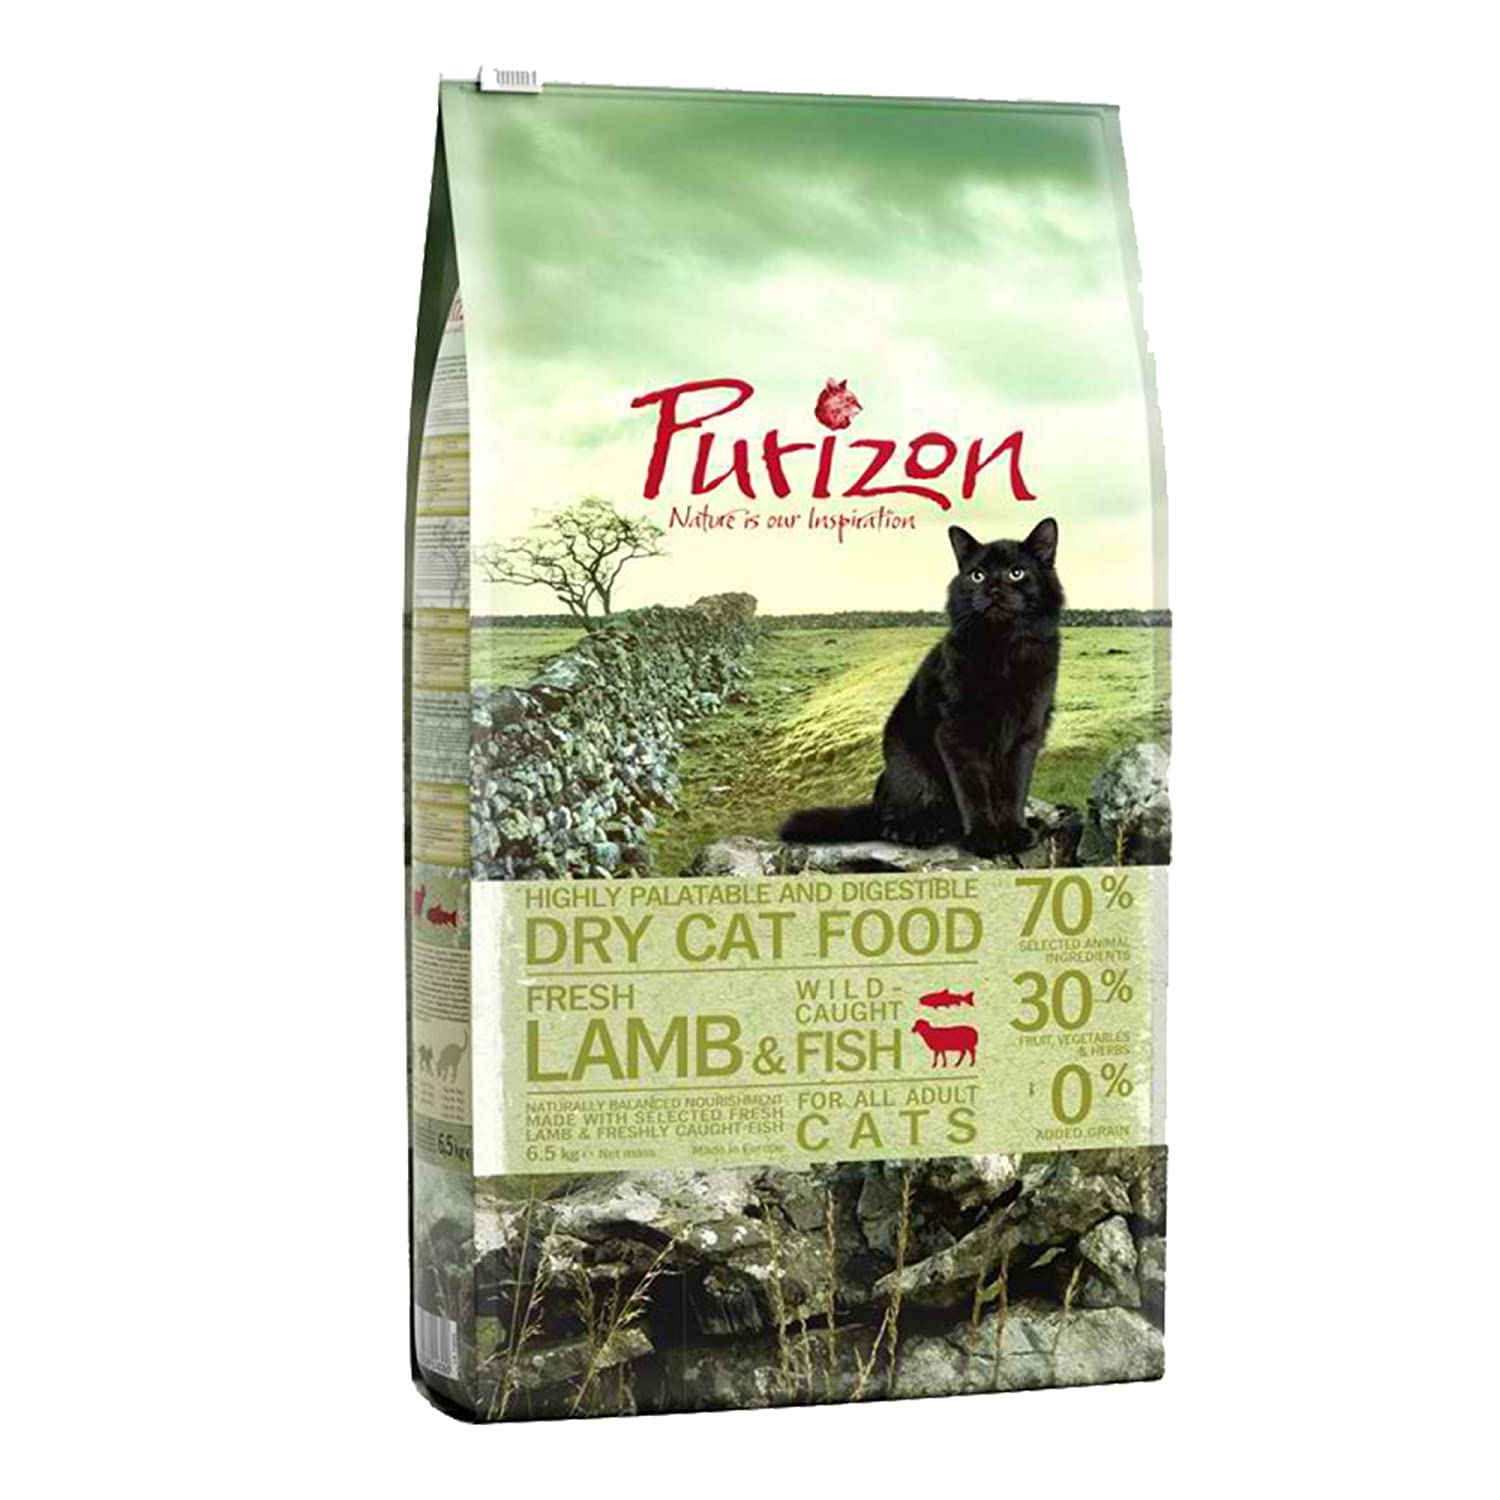 Purizon Premium Adult Dry Cat Food Lamb & Fish(6.5kg)